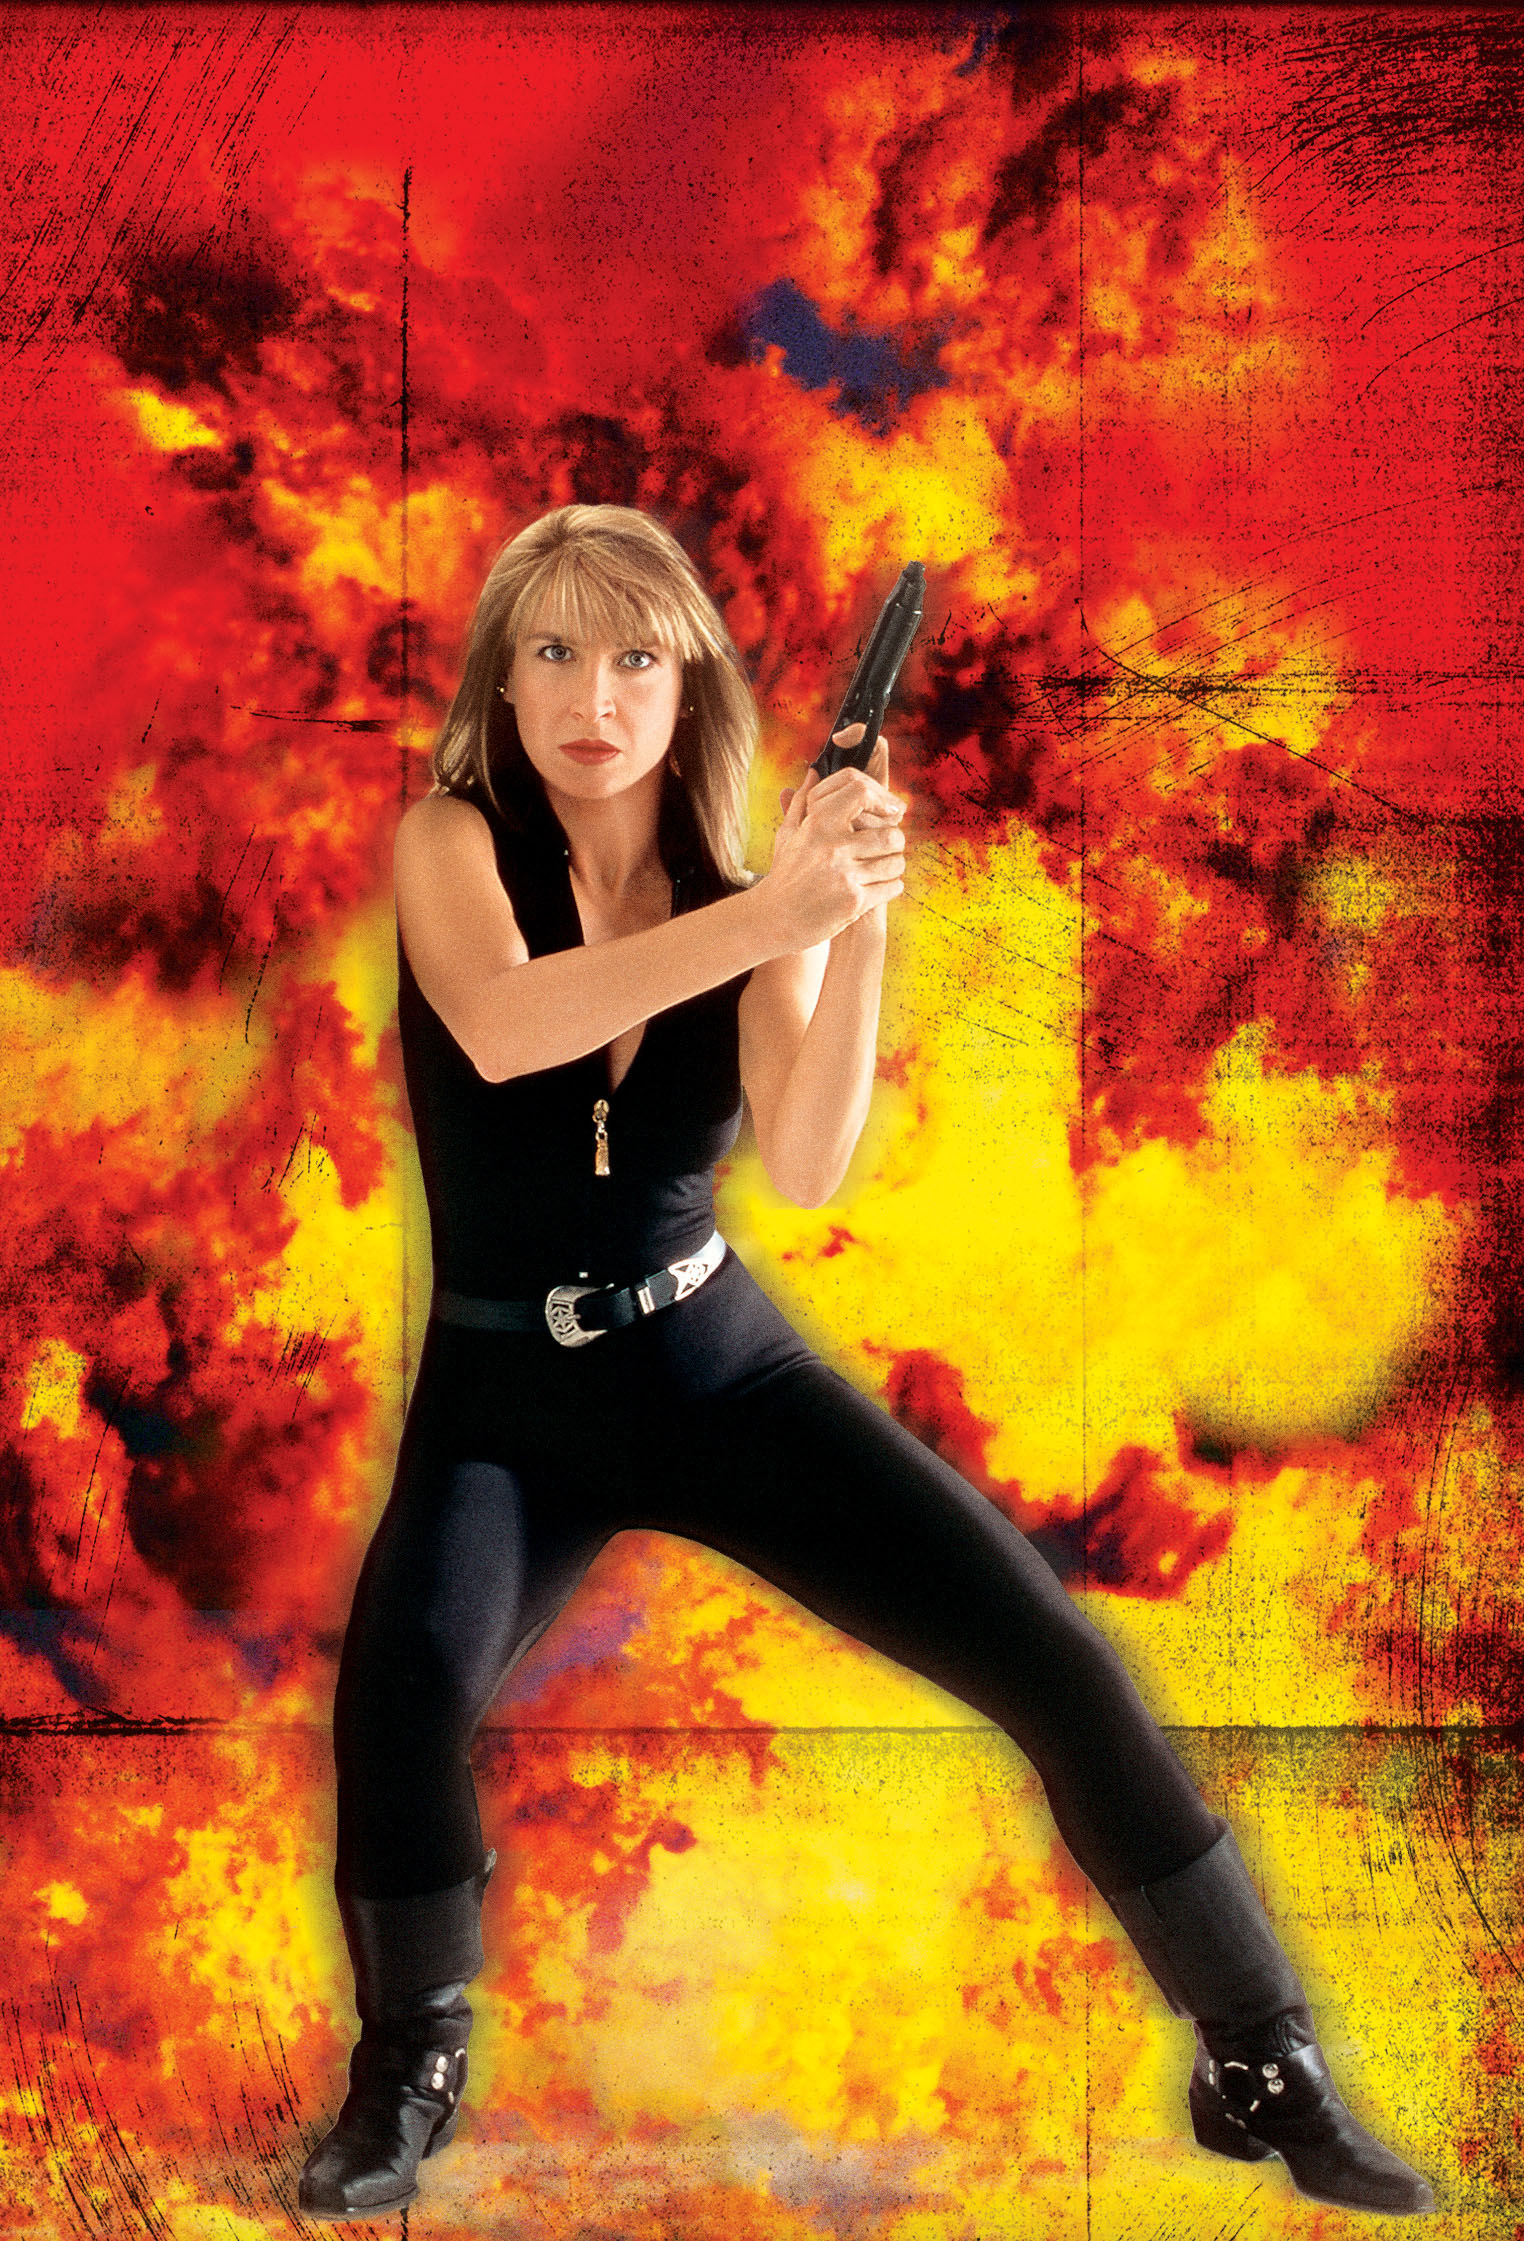 Cynthia Rothrock Undefeatable Cynthia Rothrock